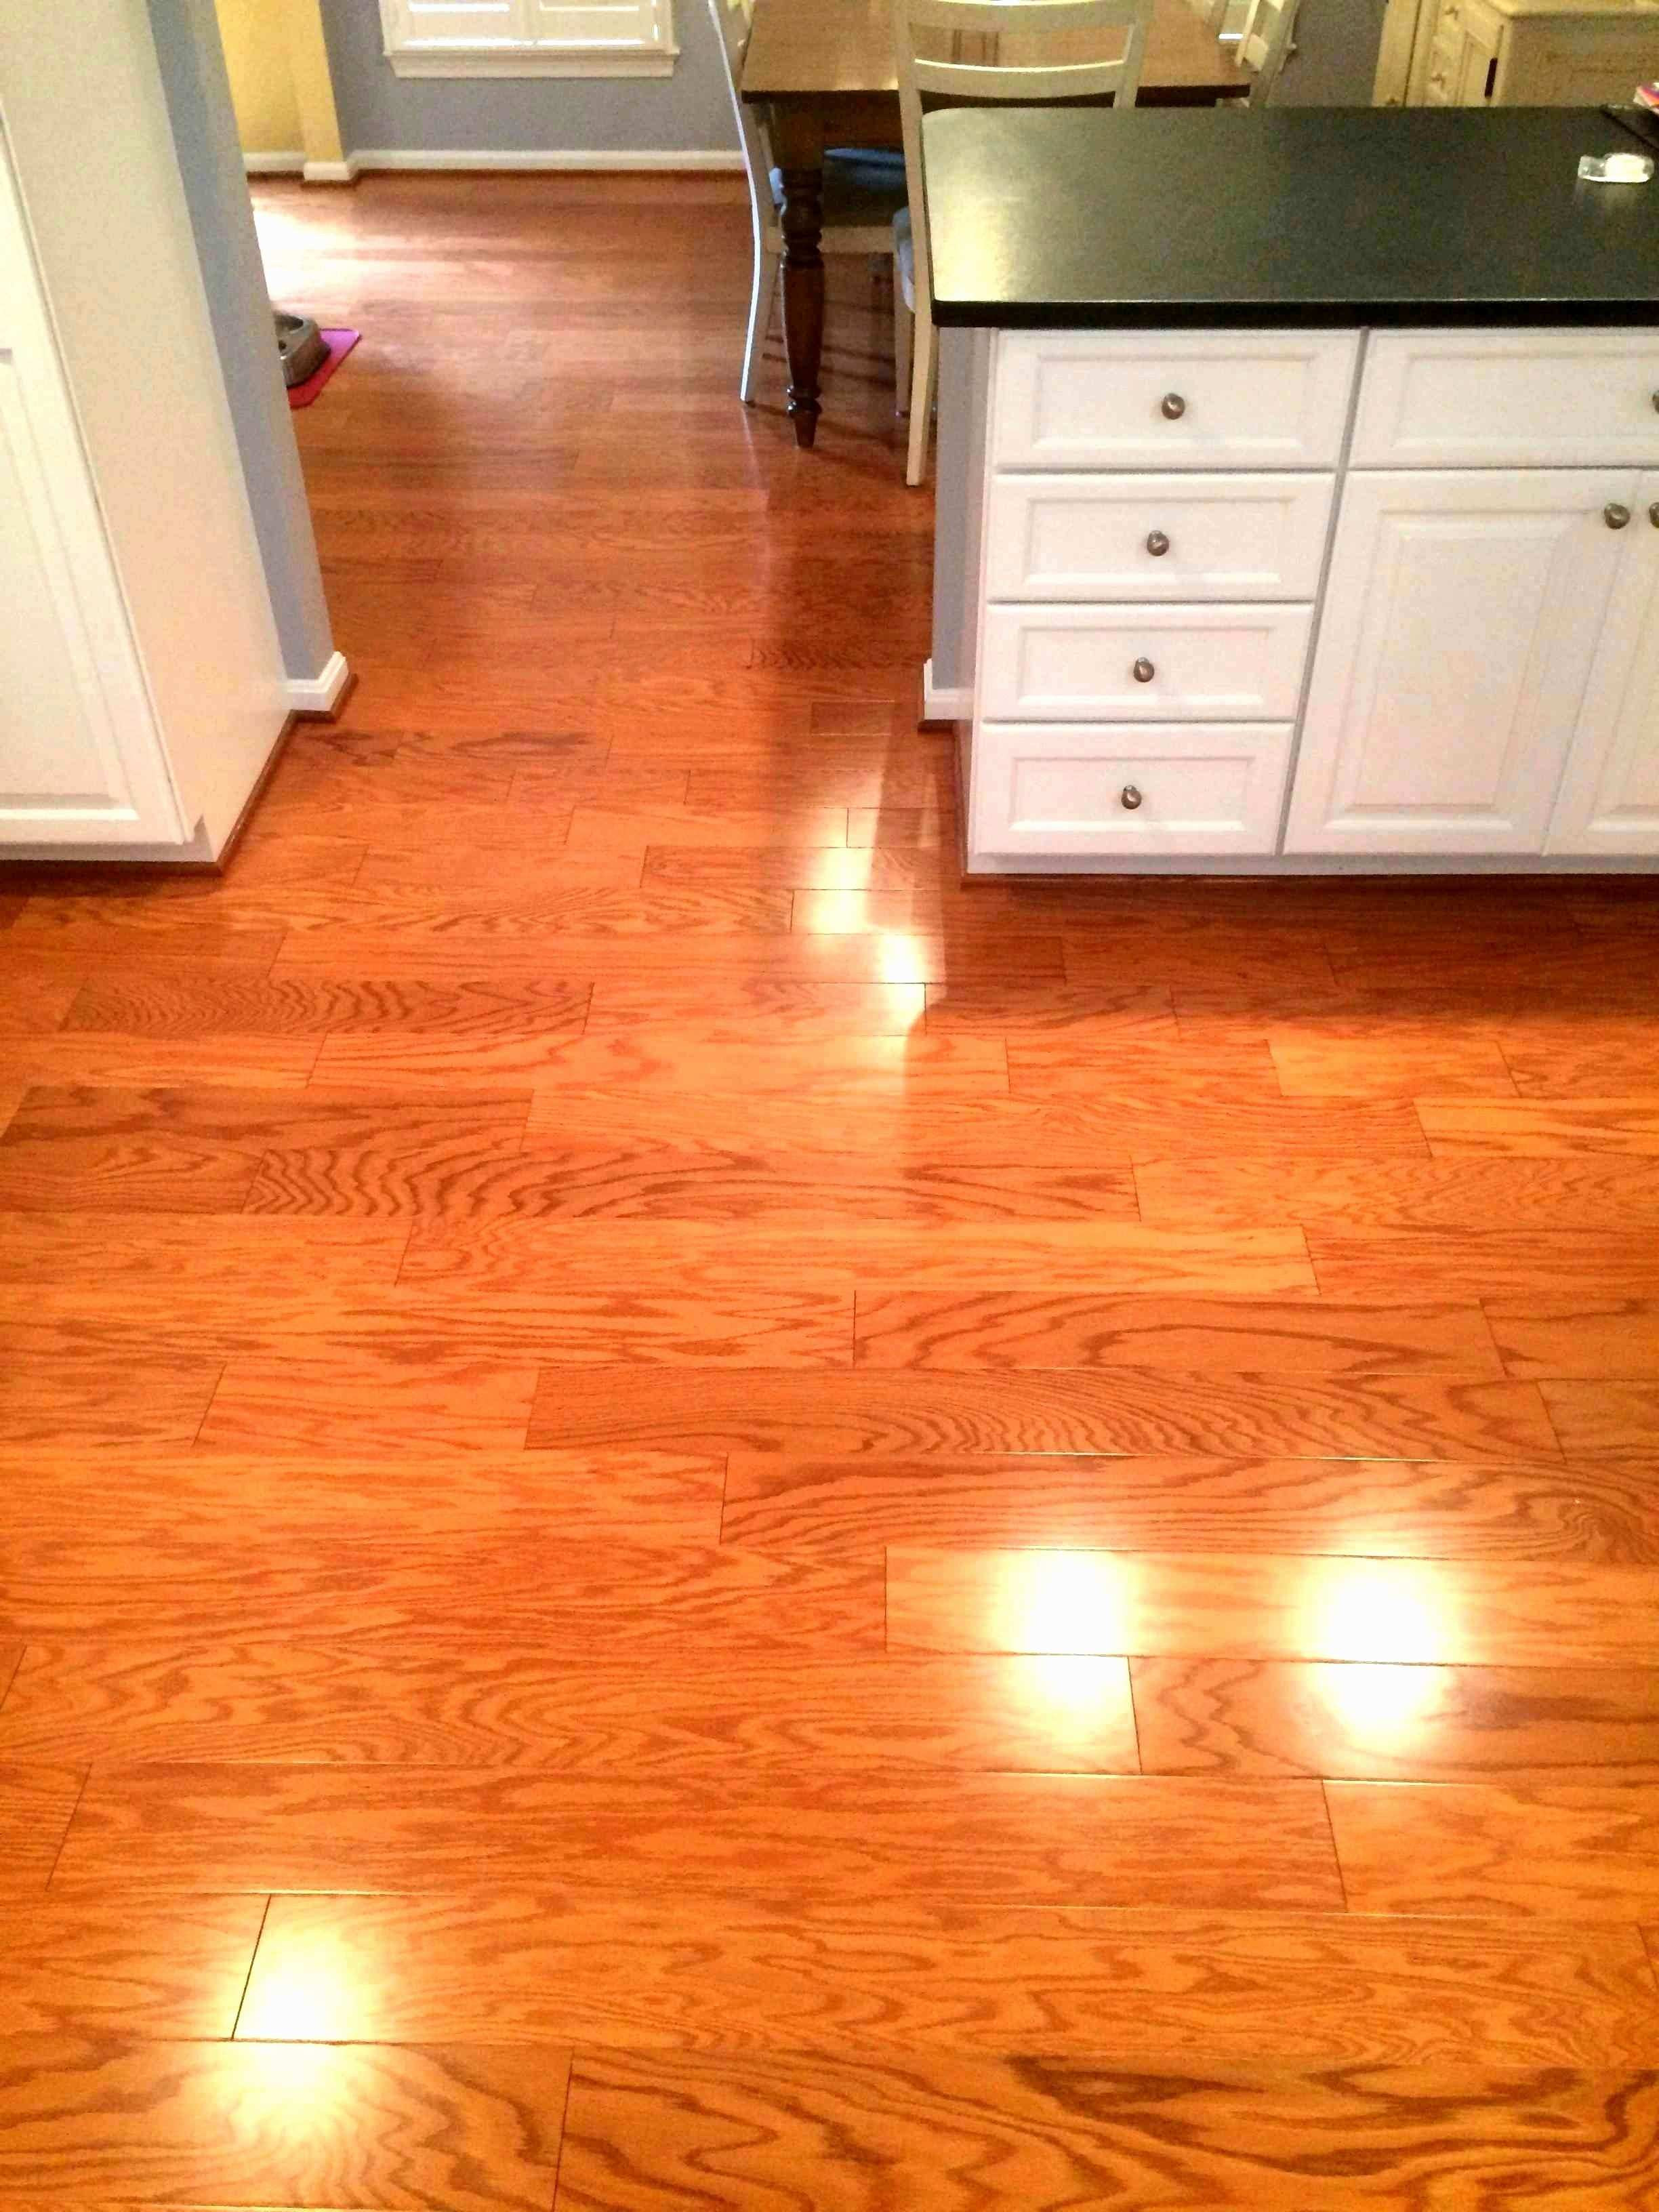 26 Stunning Hardwood Floor Transition Between Uneven Rooms